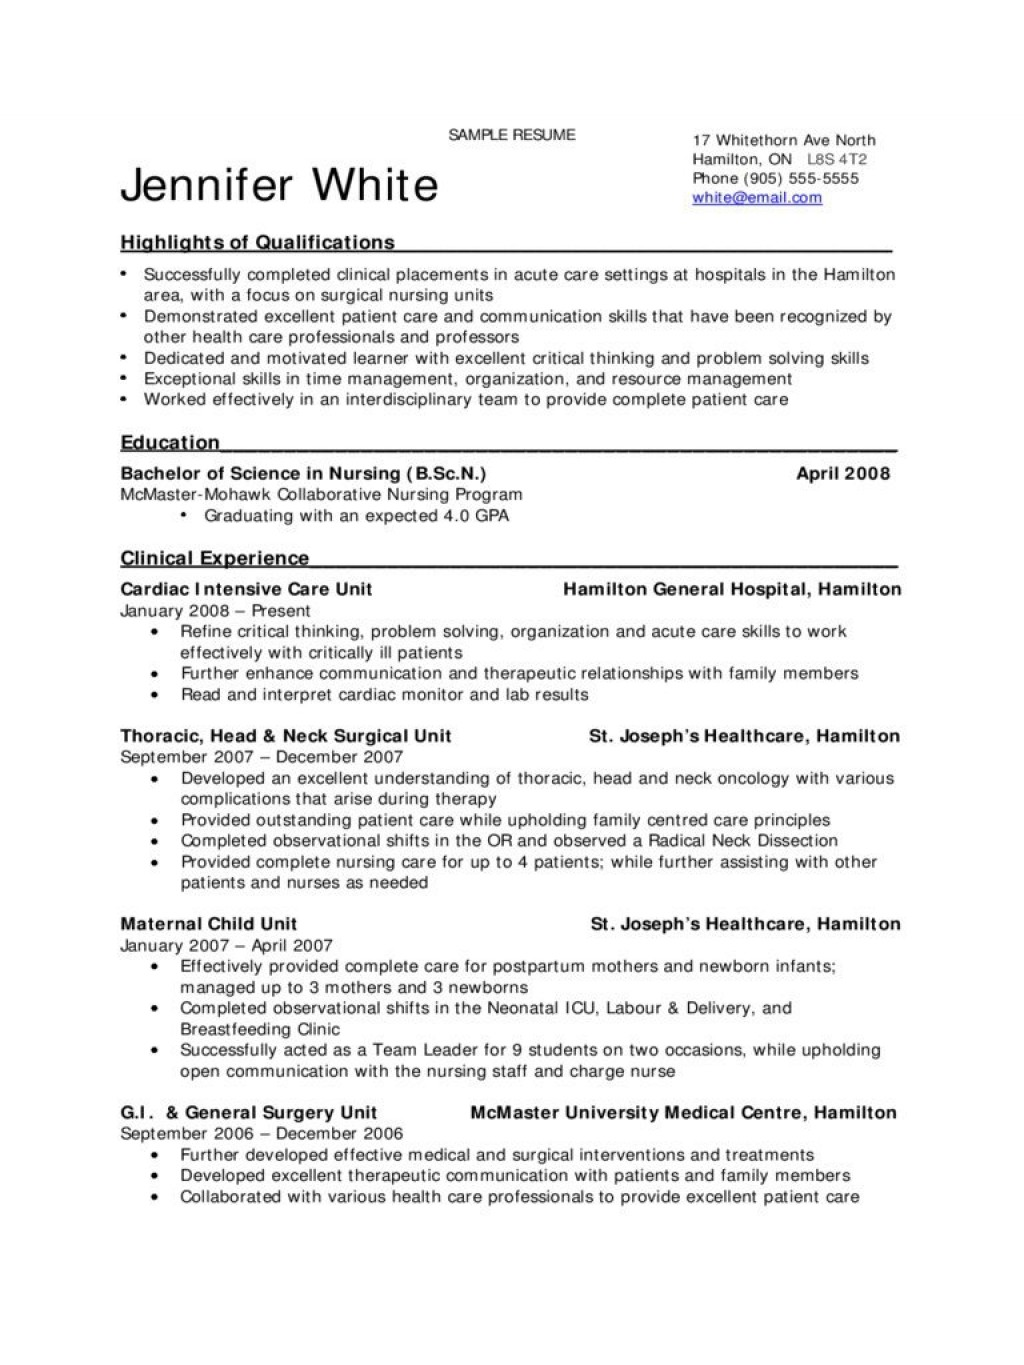 009 Excellent New Grad Nursing Resume Template Example  Graduate Nurse PractitionerLarge